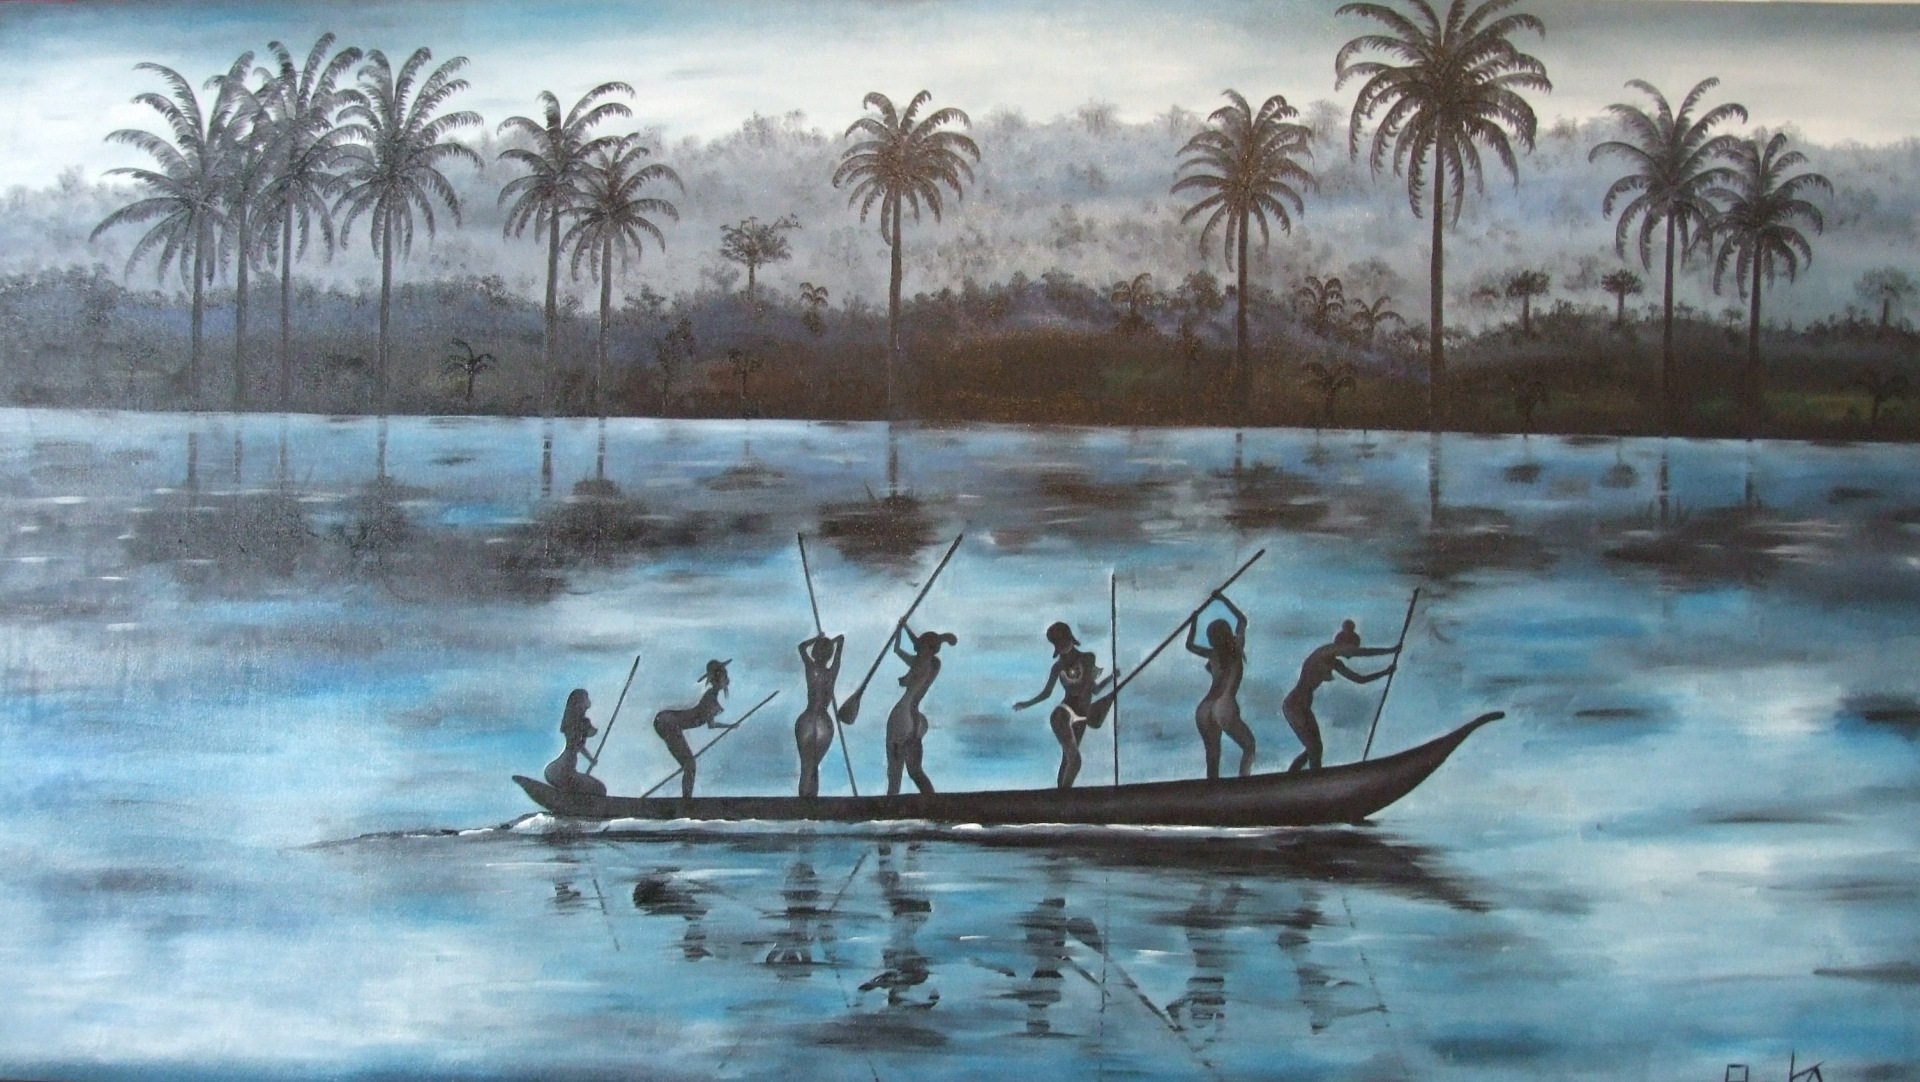 Women's Pirogue 165 x 92 cm - oil on canvas